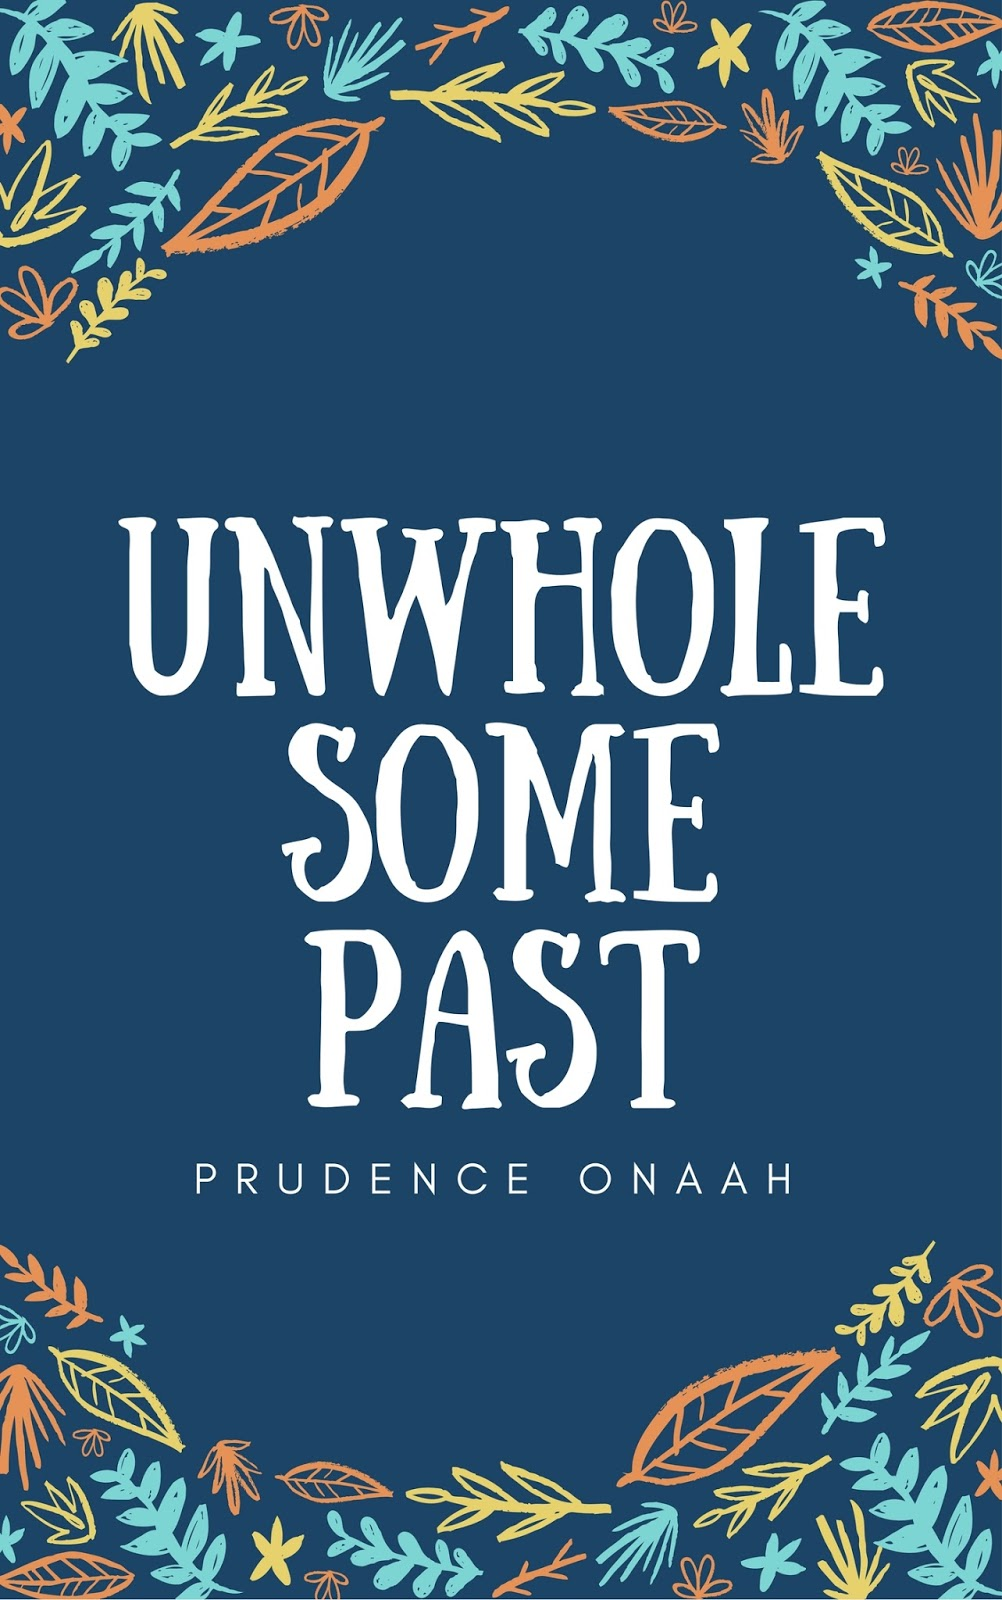 Unwholesome Past by Prudence Onaah